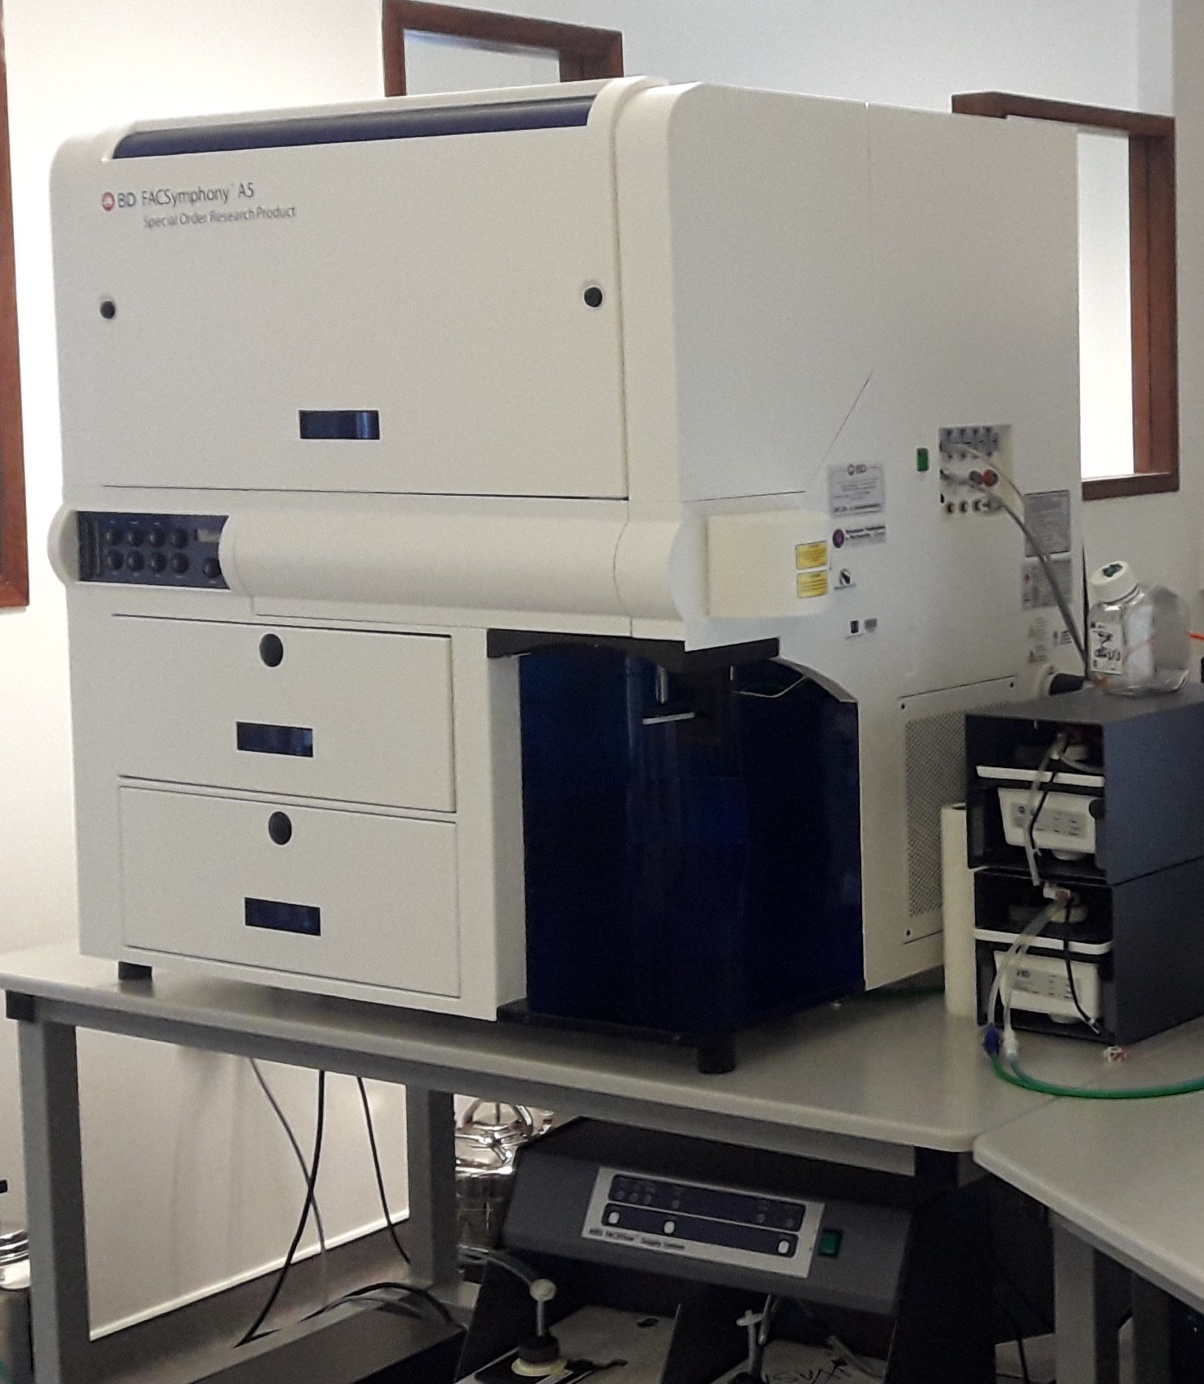 The Cytocell platform equips itself with a 32-parameter cytometer analyser